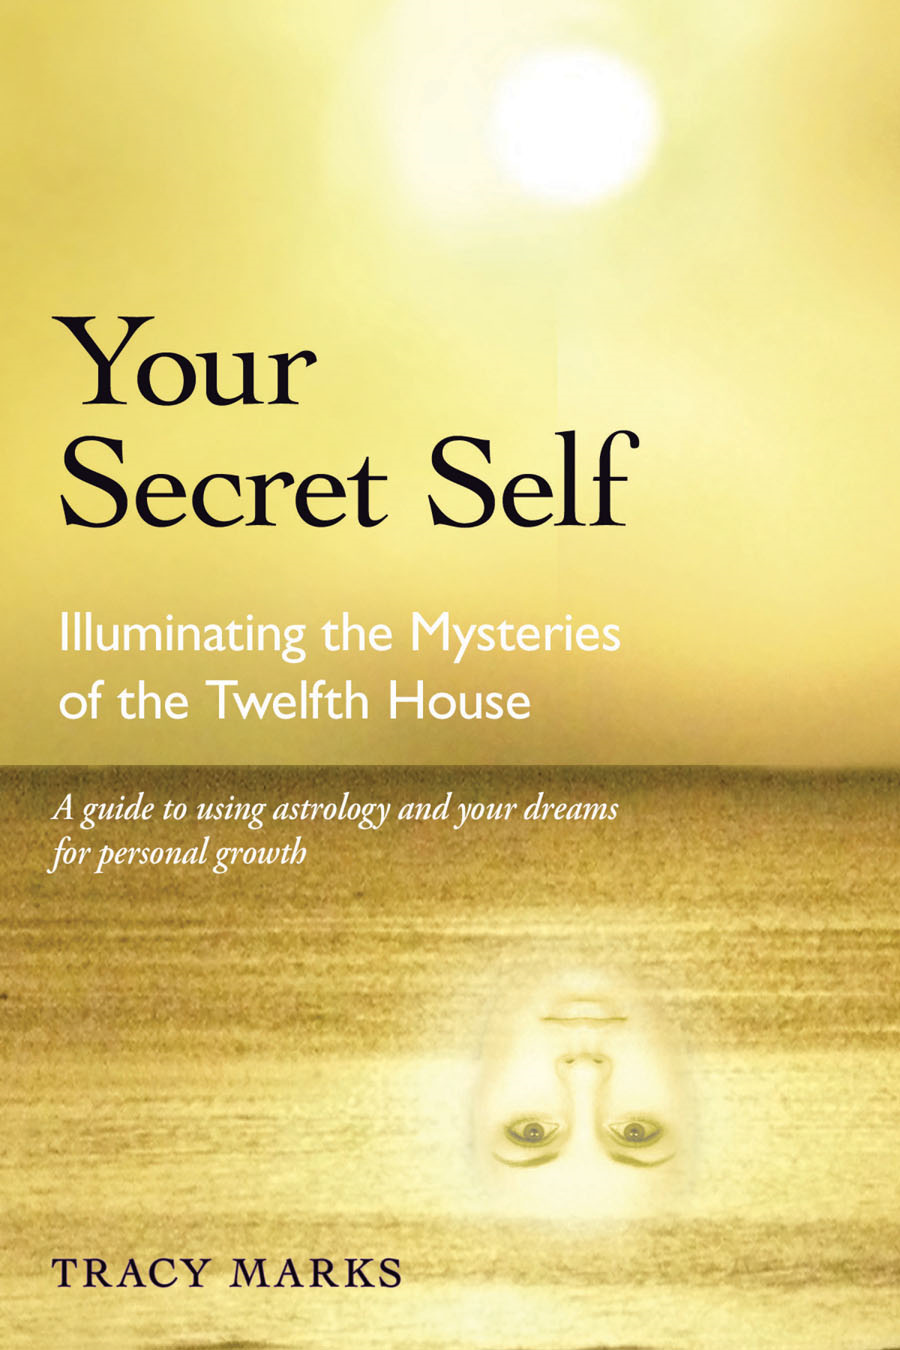 Your Secret Self